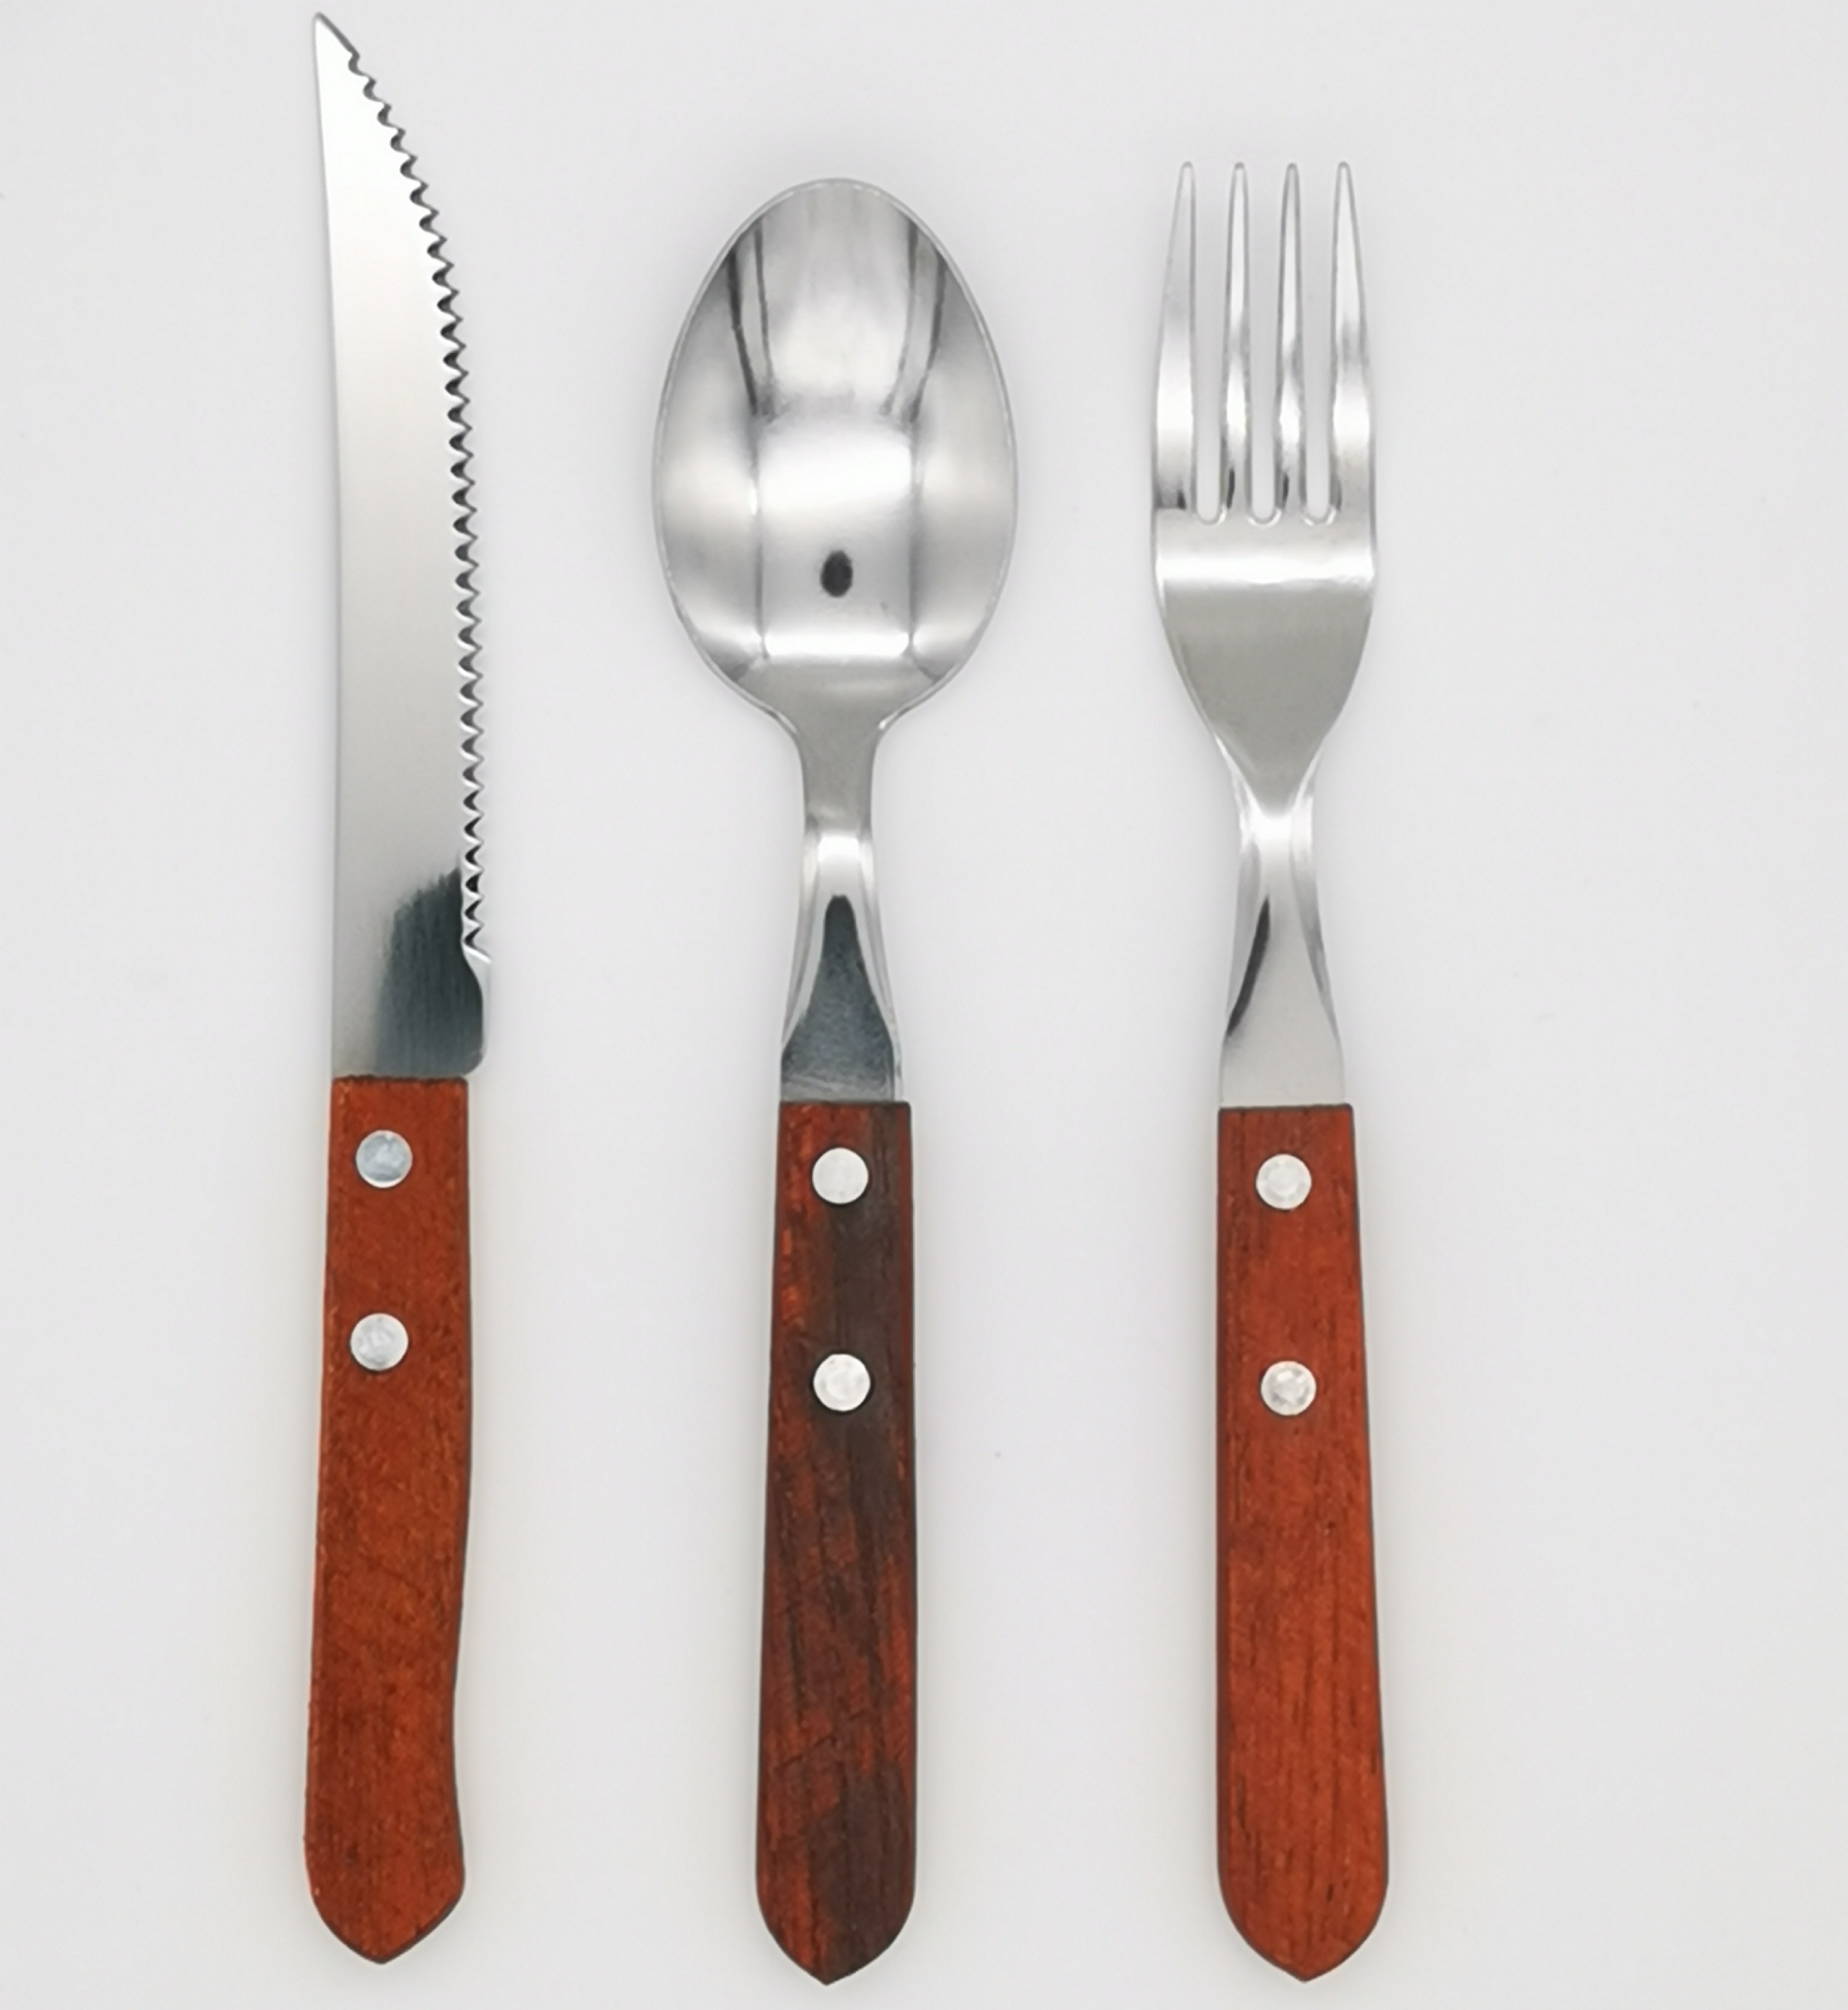 South America Most Popular Product 3pcs Wooden Handle Cutlery Set Flatware